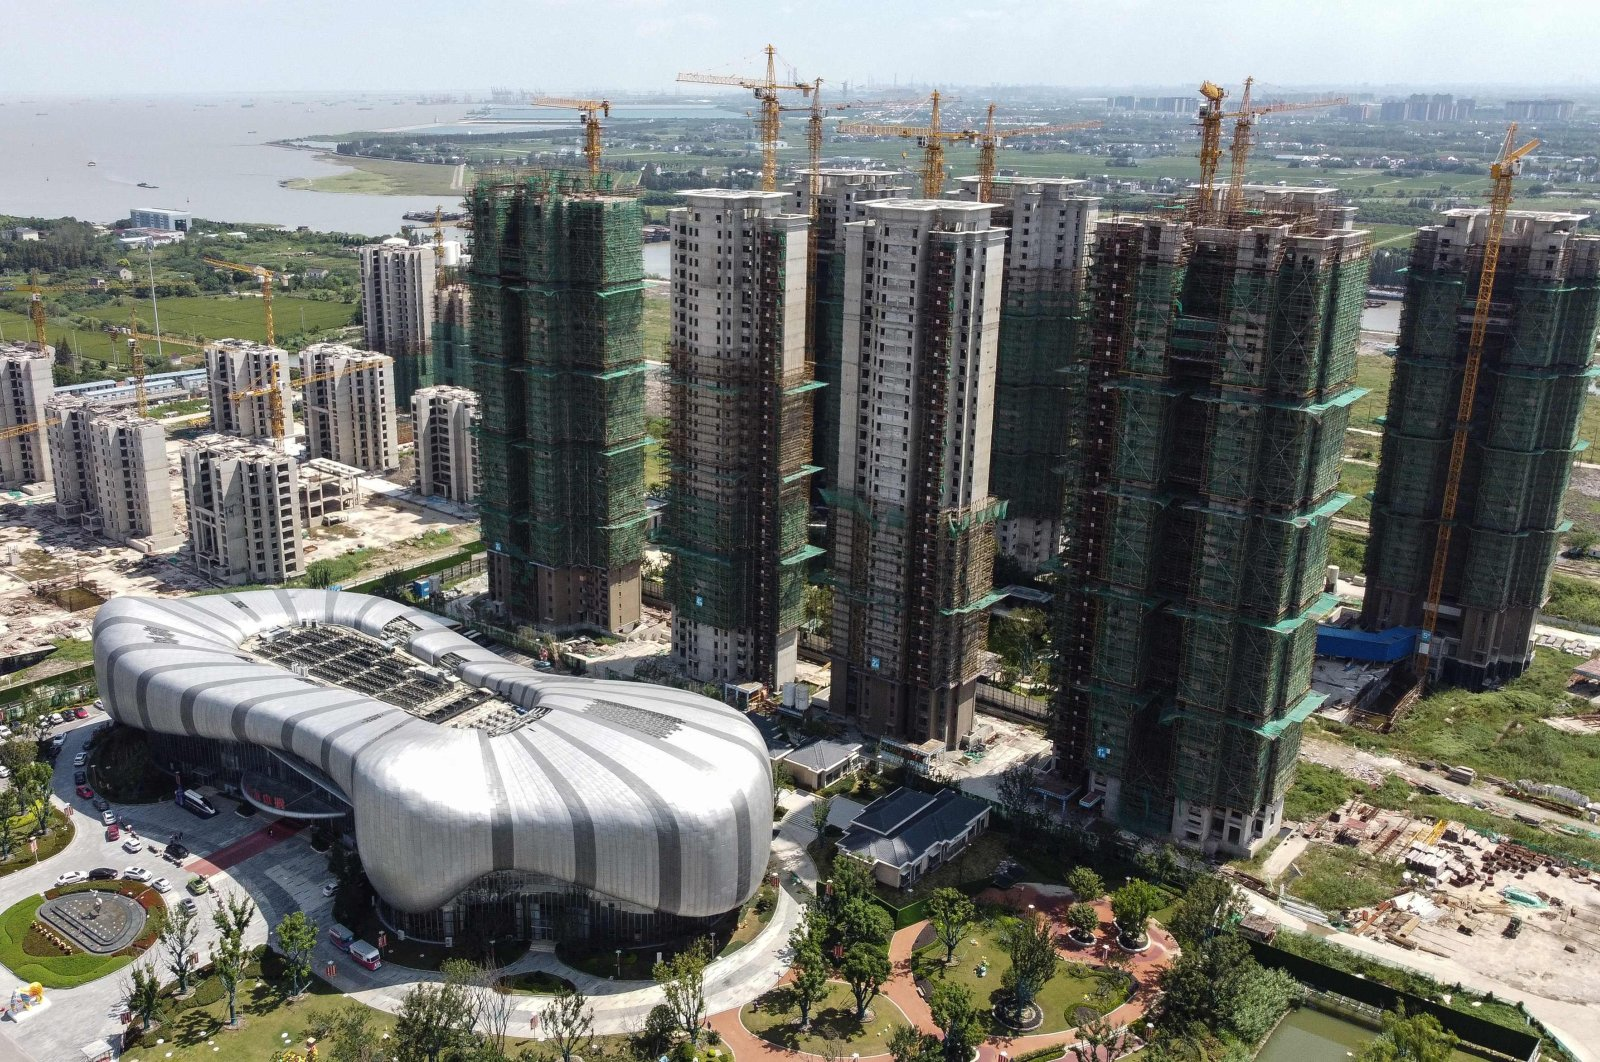 The halted under-construction Evergrande Cultural Tourism City, a mixed-used residential-retail-entertainment development, in Taicang, Suzhou city, in China's eastern Jiangsu province, Sept. 17, 2021. (AFP Photo)